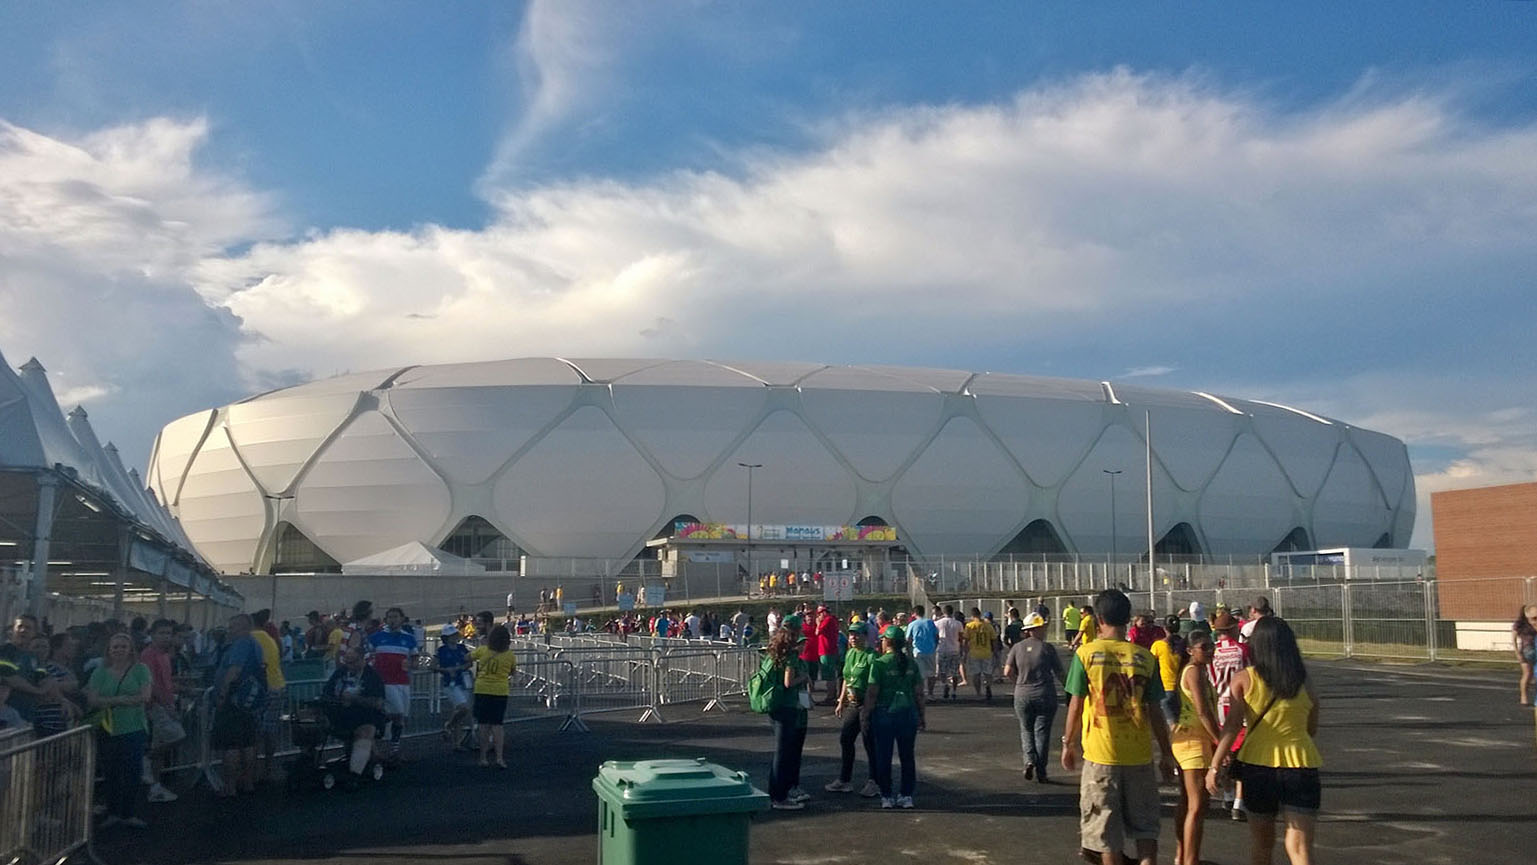 Walking into the most beautiful of the new World Cup stadiums - Arena Amazonia